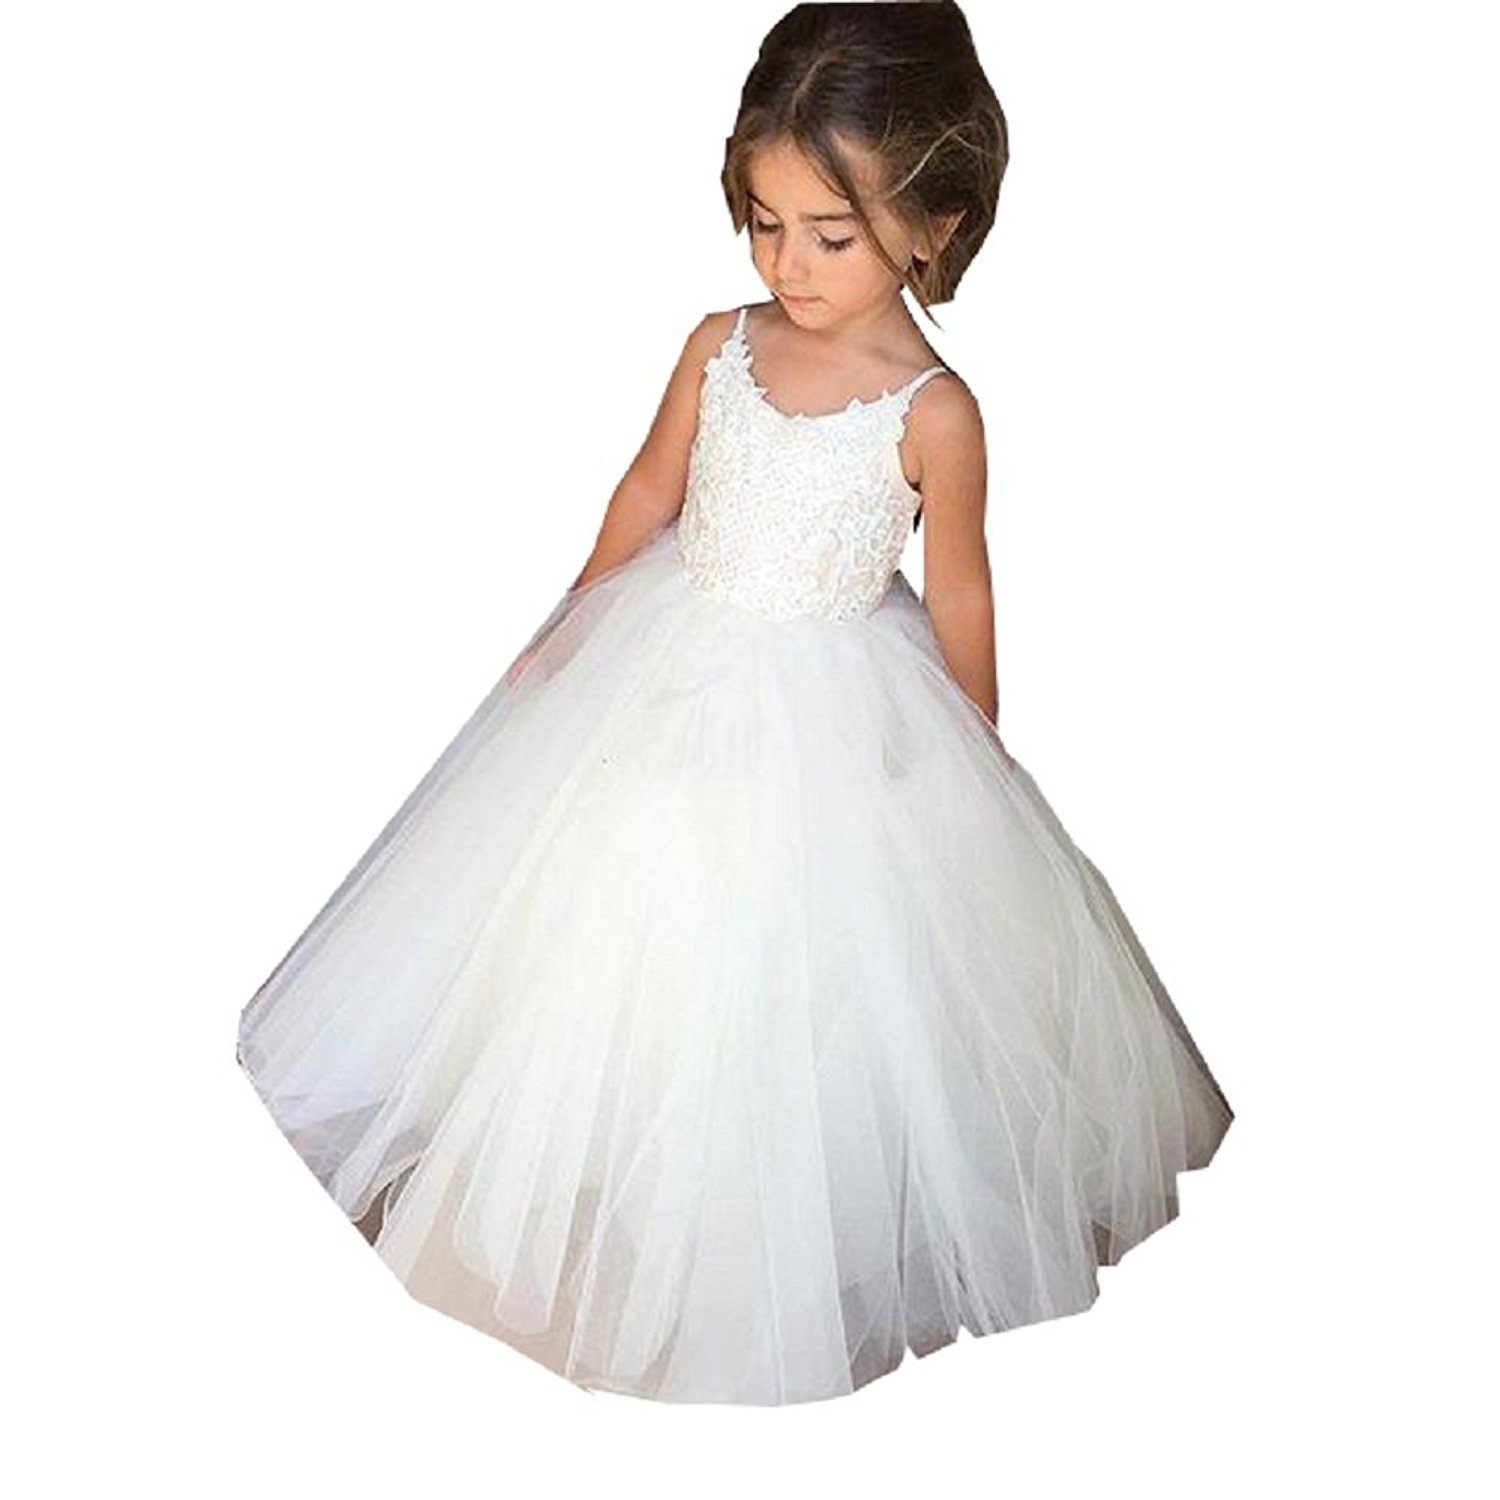 PLwedding Flower Girls Lace Tulle Ball Gowns First Communion Dresses (Size 4, Ivory)